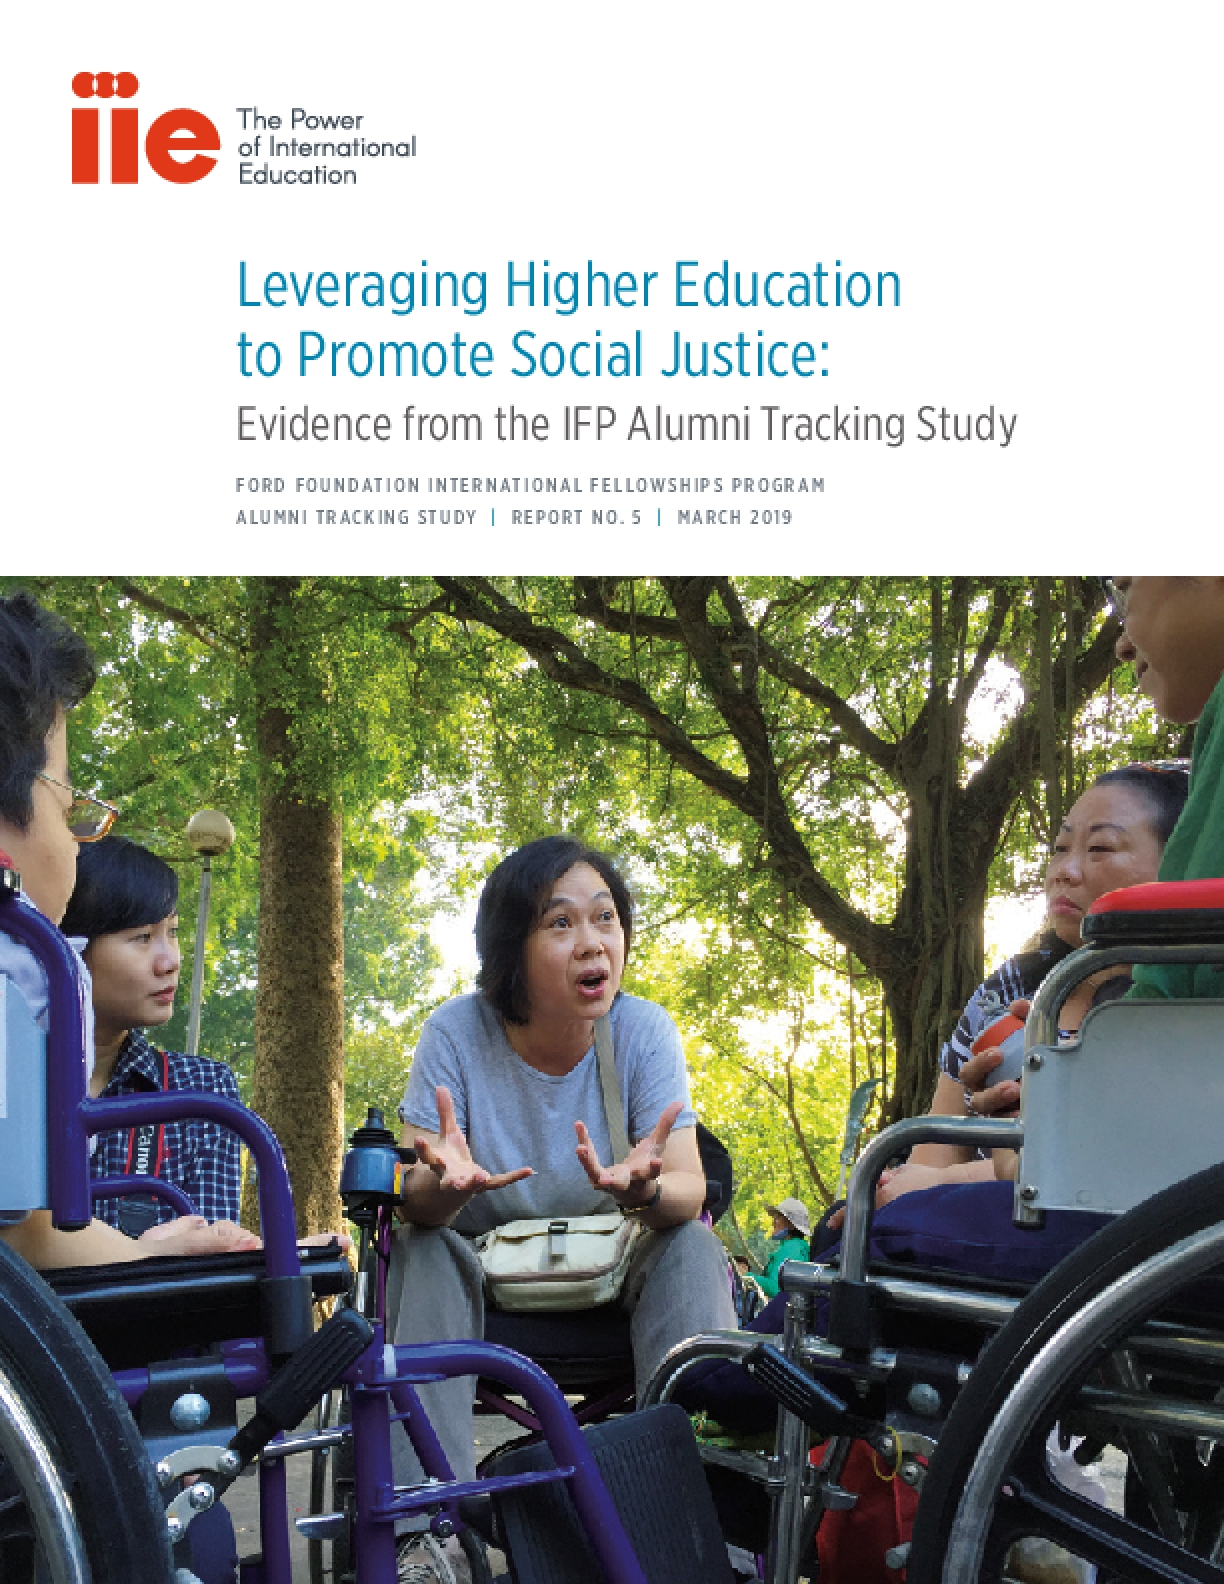 Leveraging Higher Education to Promote Social Justice: Evidence from the IFP Alumni Tracking Study